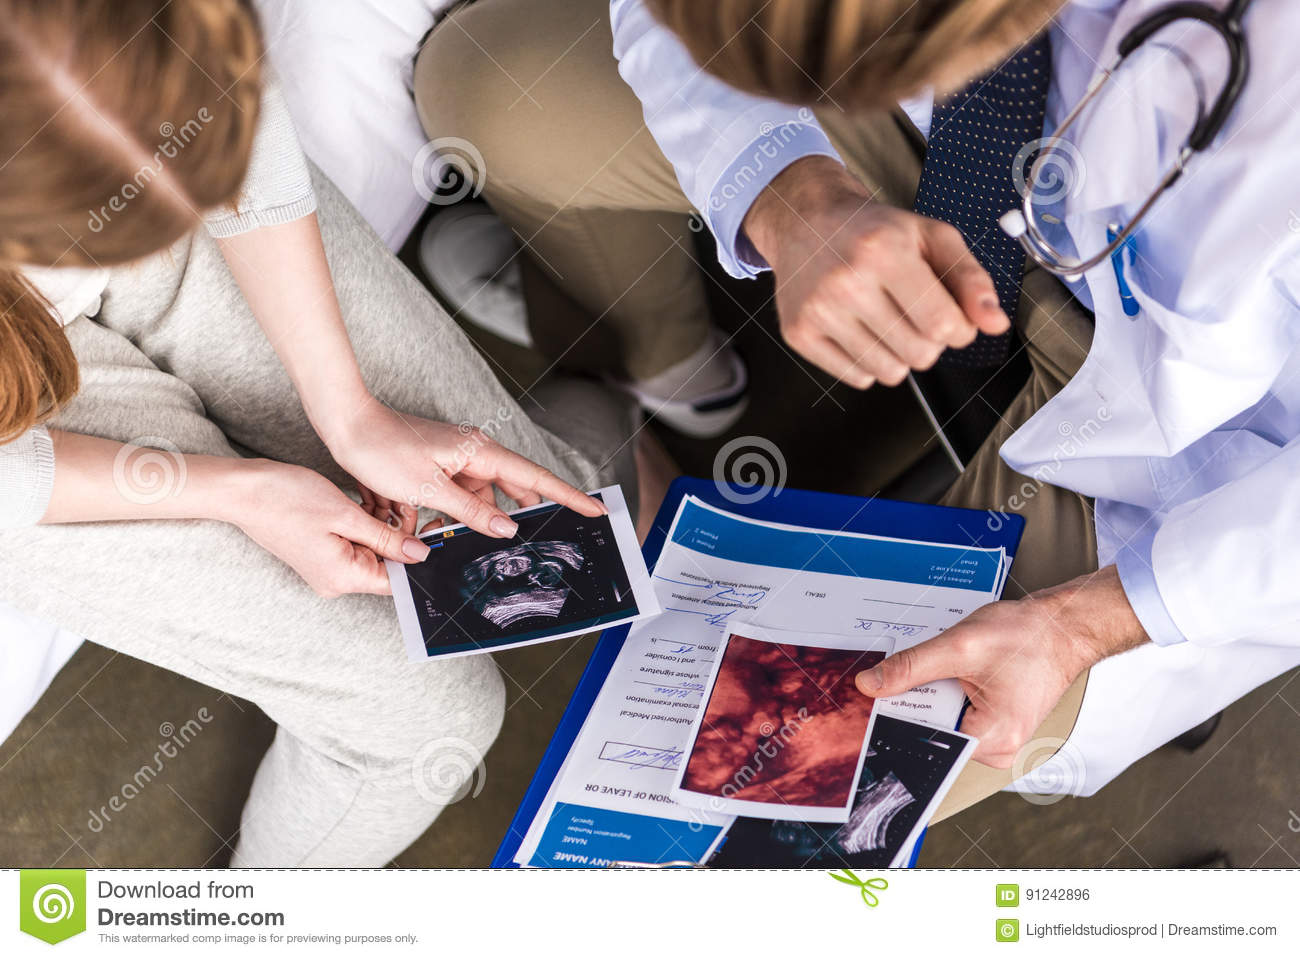 Doctor and woman looking at ultrasound scans